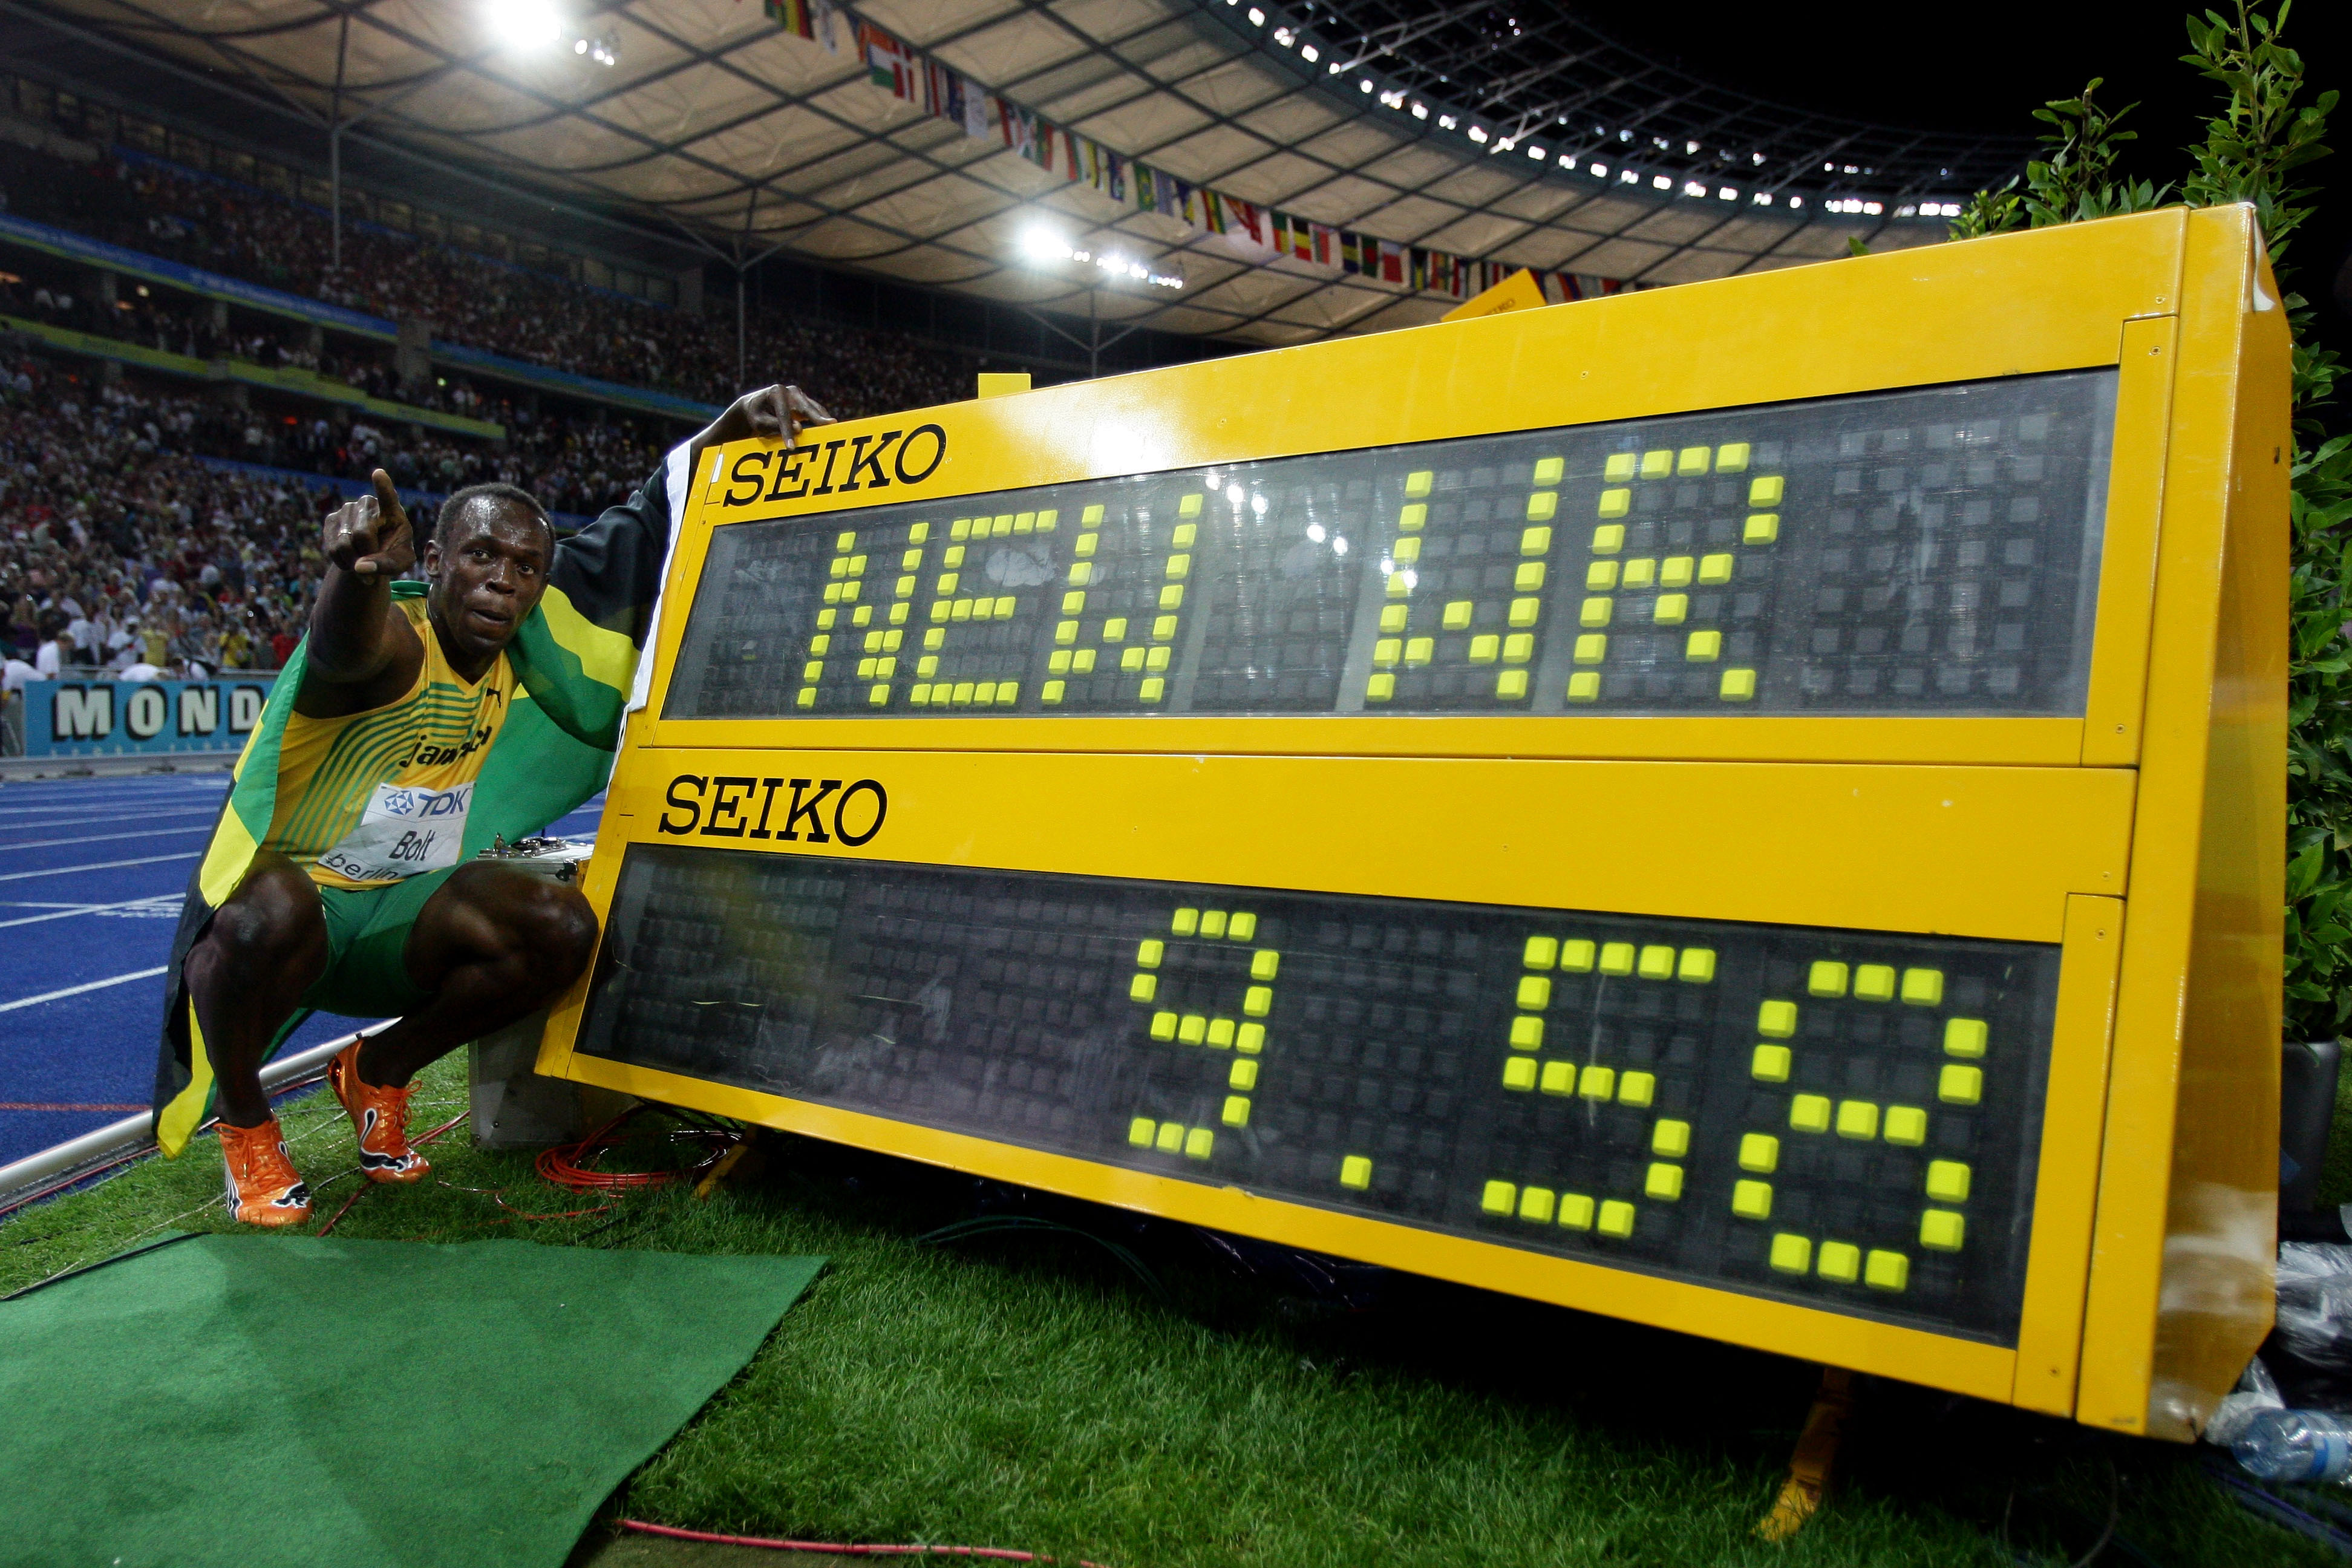 Usain Bolt celebrates winning the gold medal in the men's 100 Metres Final World Athletics Championships in Berlin. Bolt set a new World Record of 9.58.